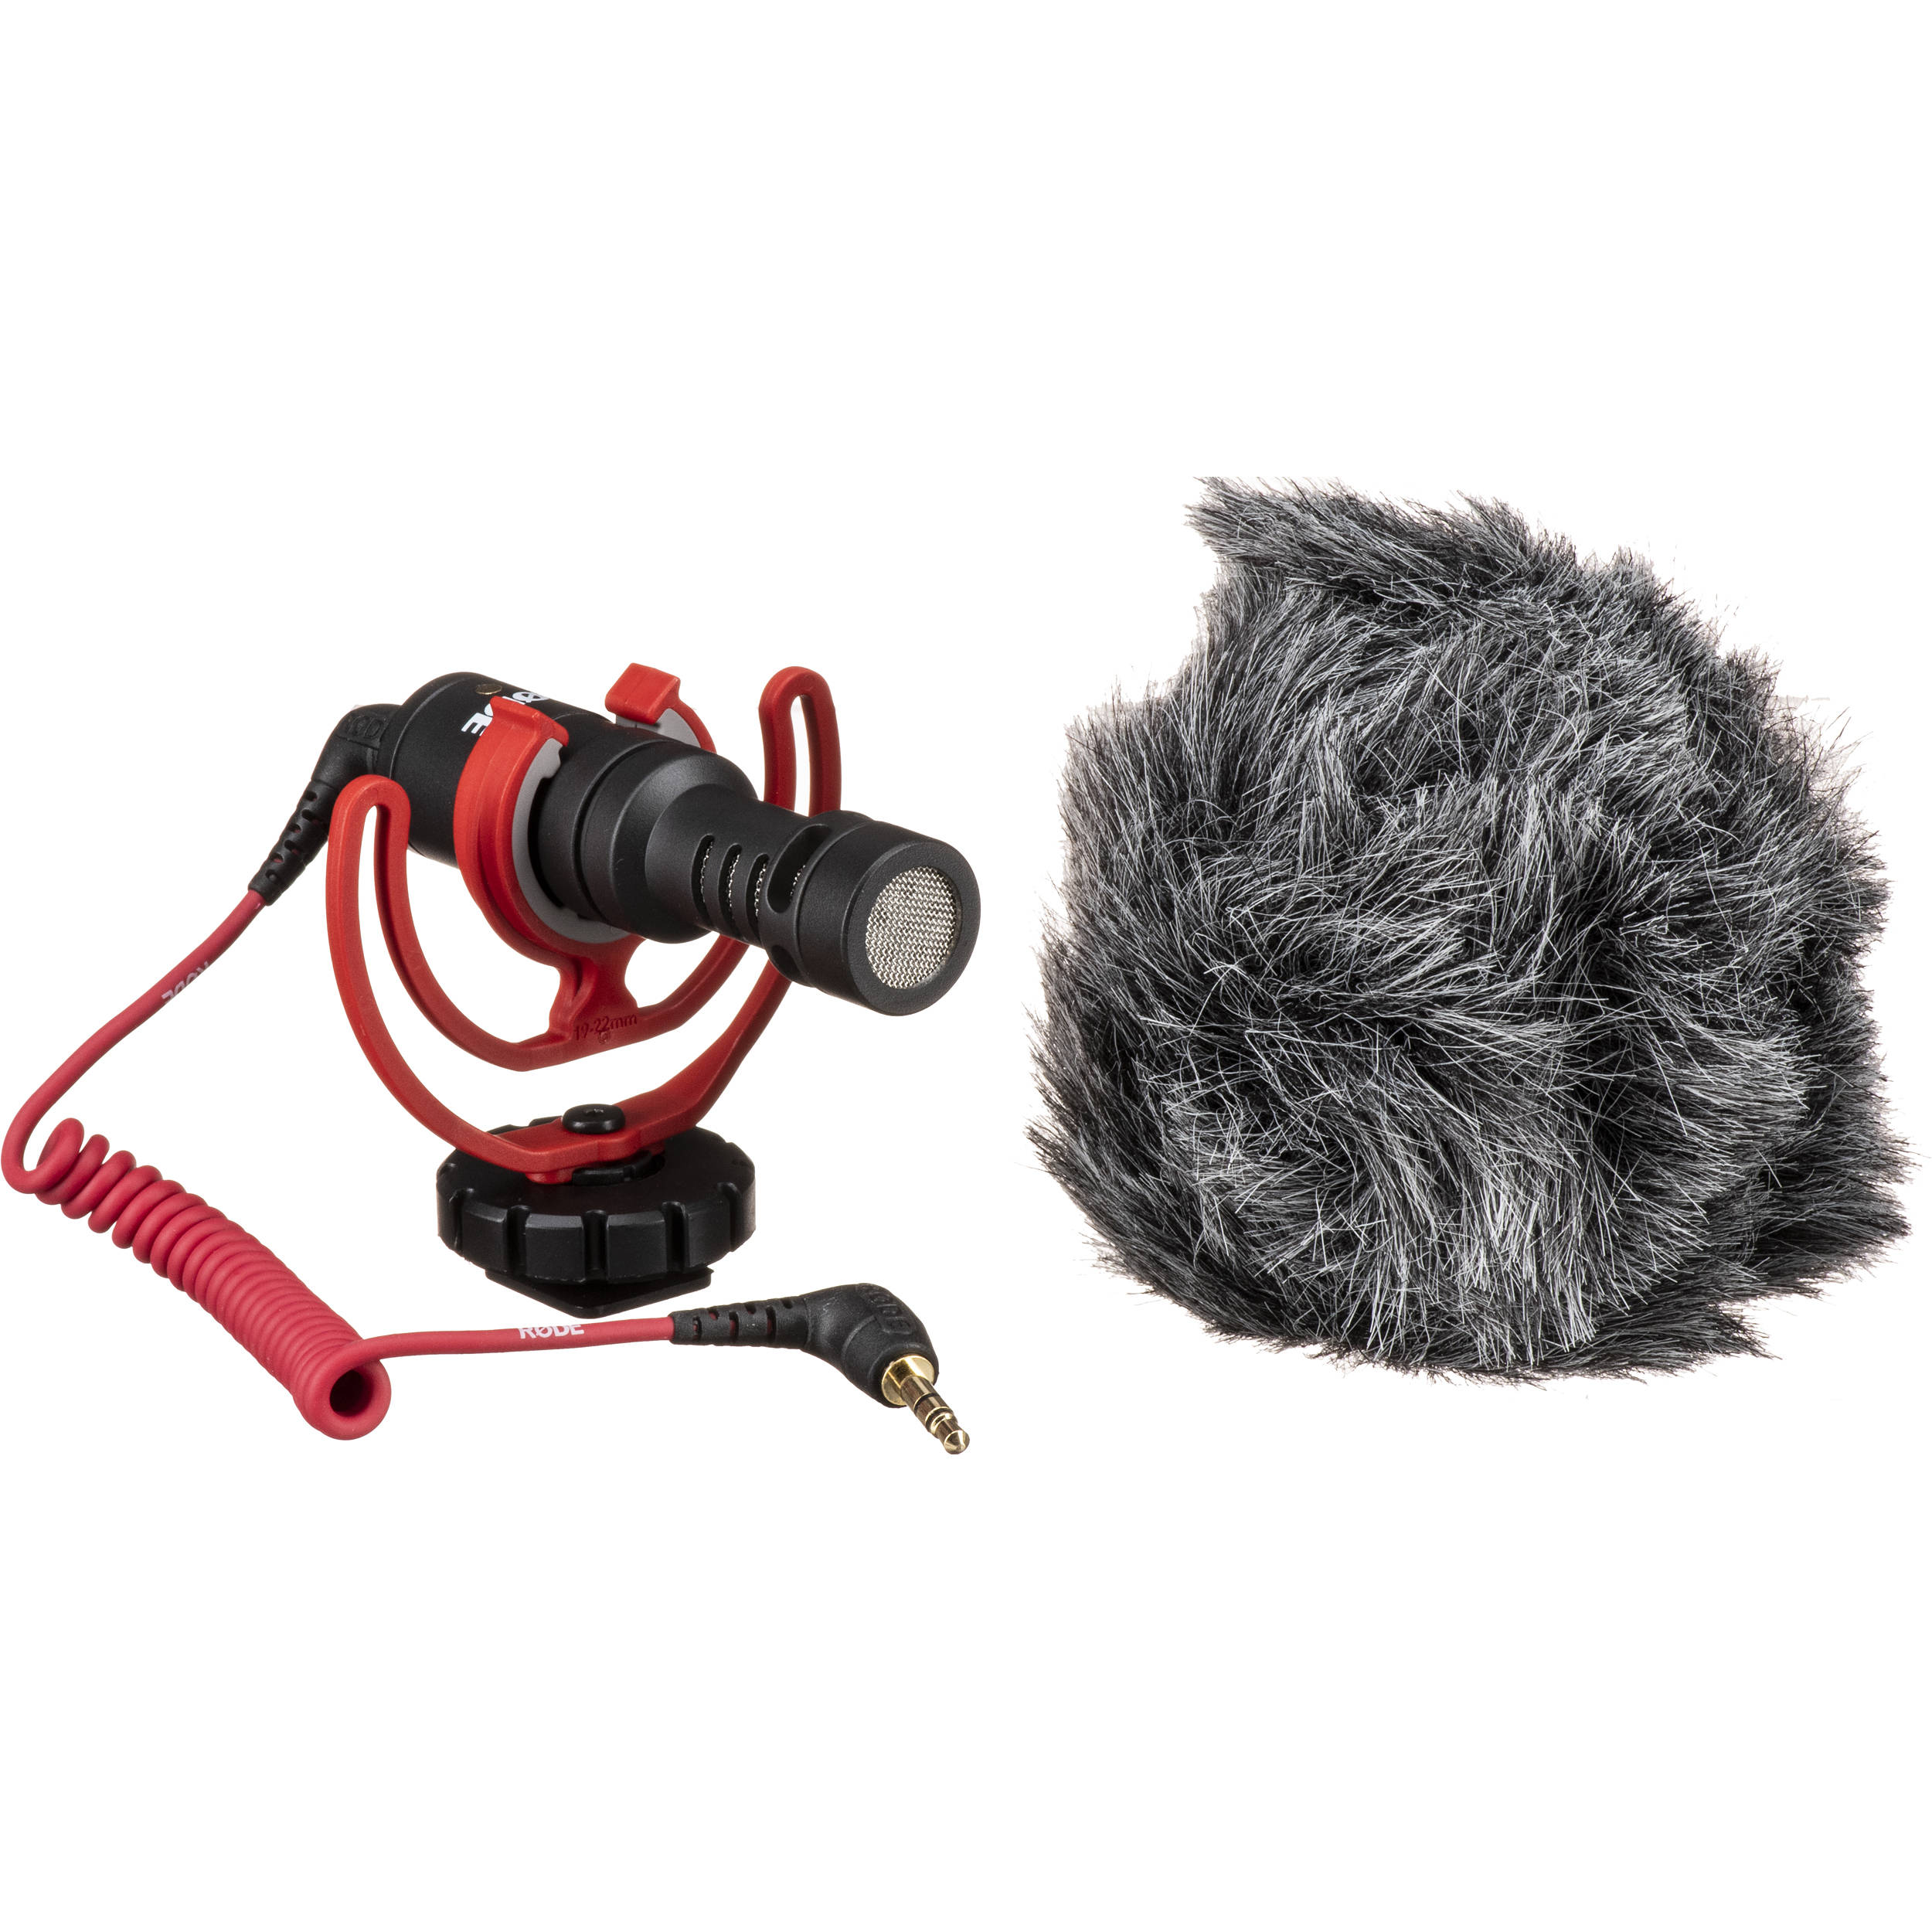 Rode Videomicro Compact On Camera Microphone Bh Boya By M1 Clip Mic For Canon Nikon Sony Dslr Kamera Universal Video Camcorder Iphone